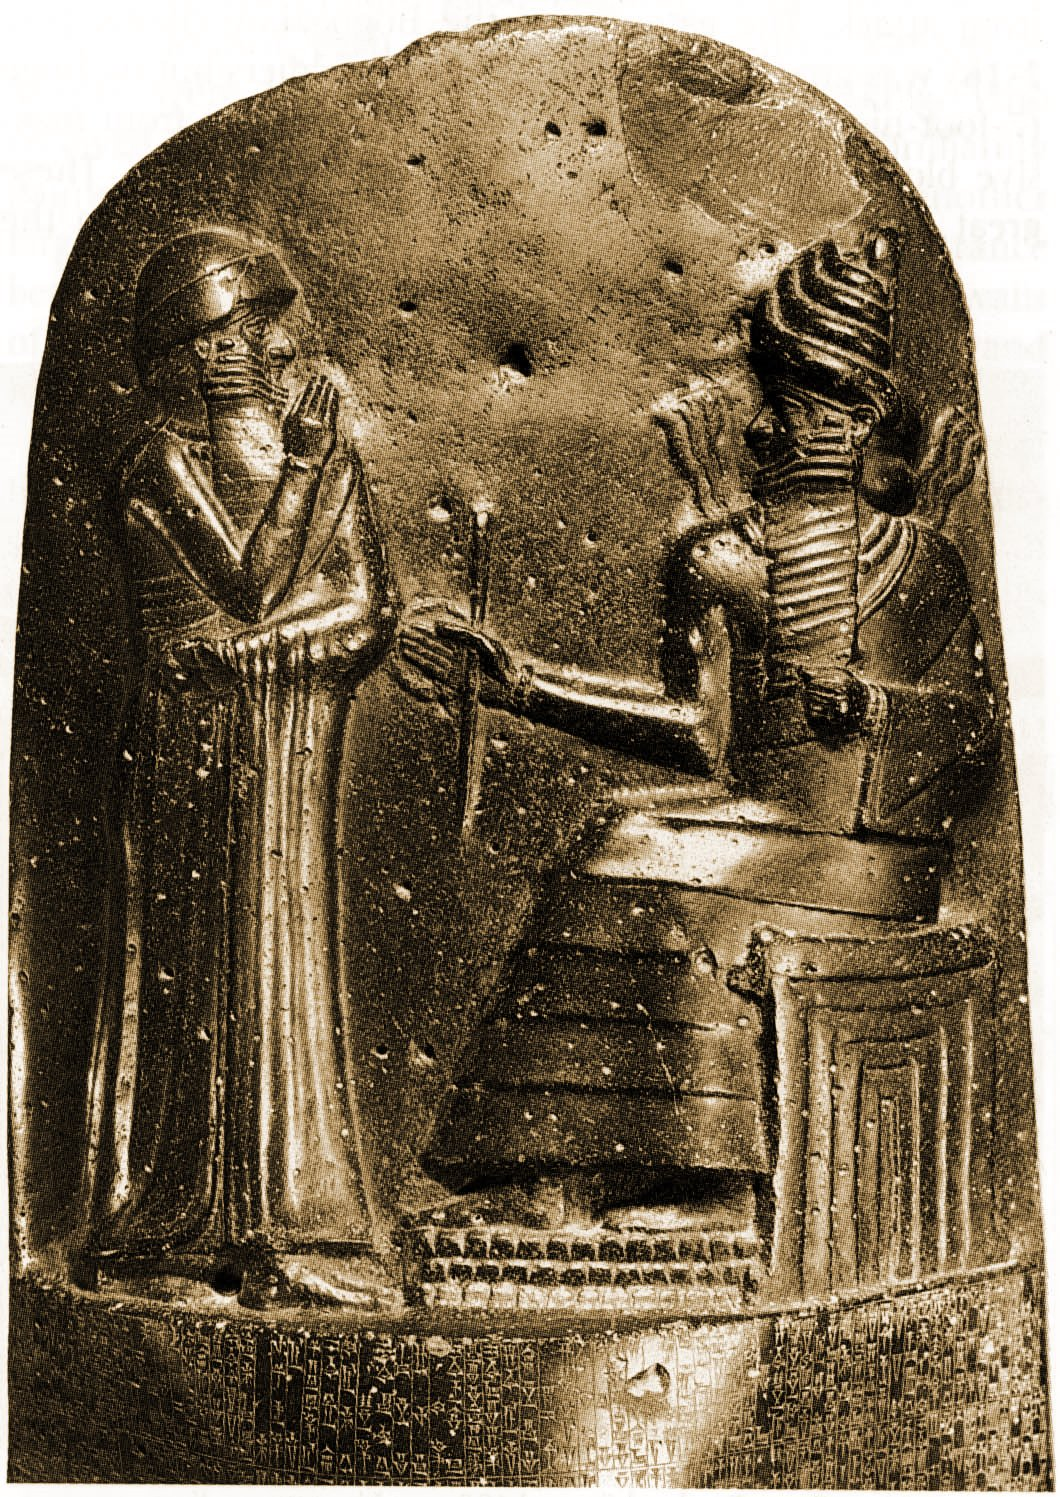 Hammurabi on his throne